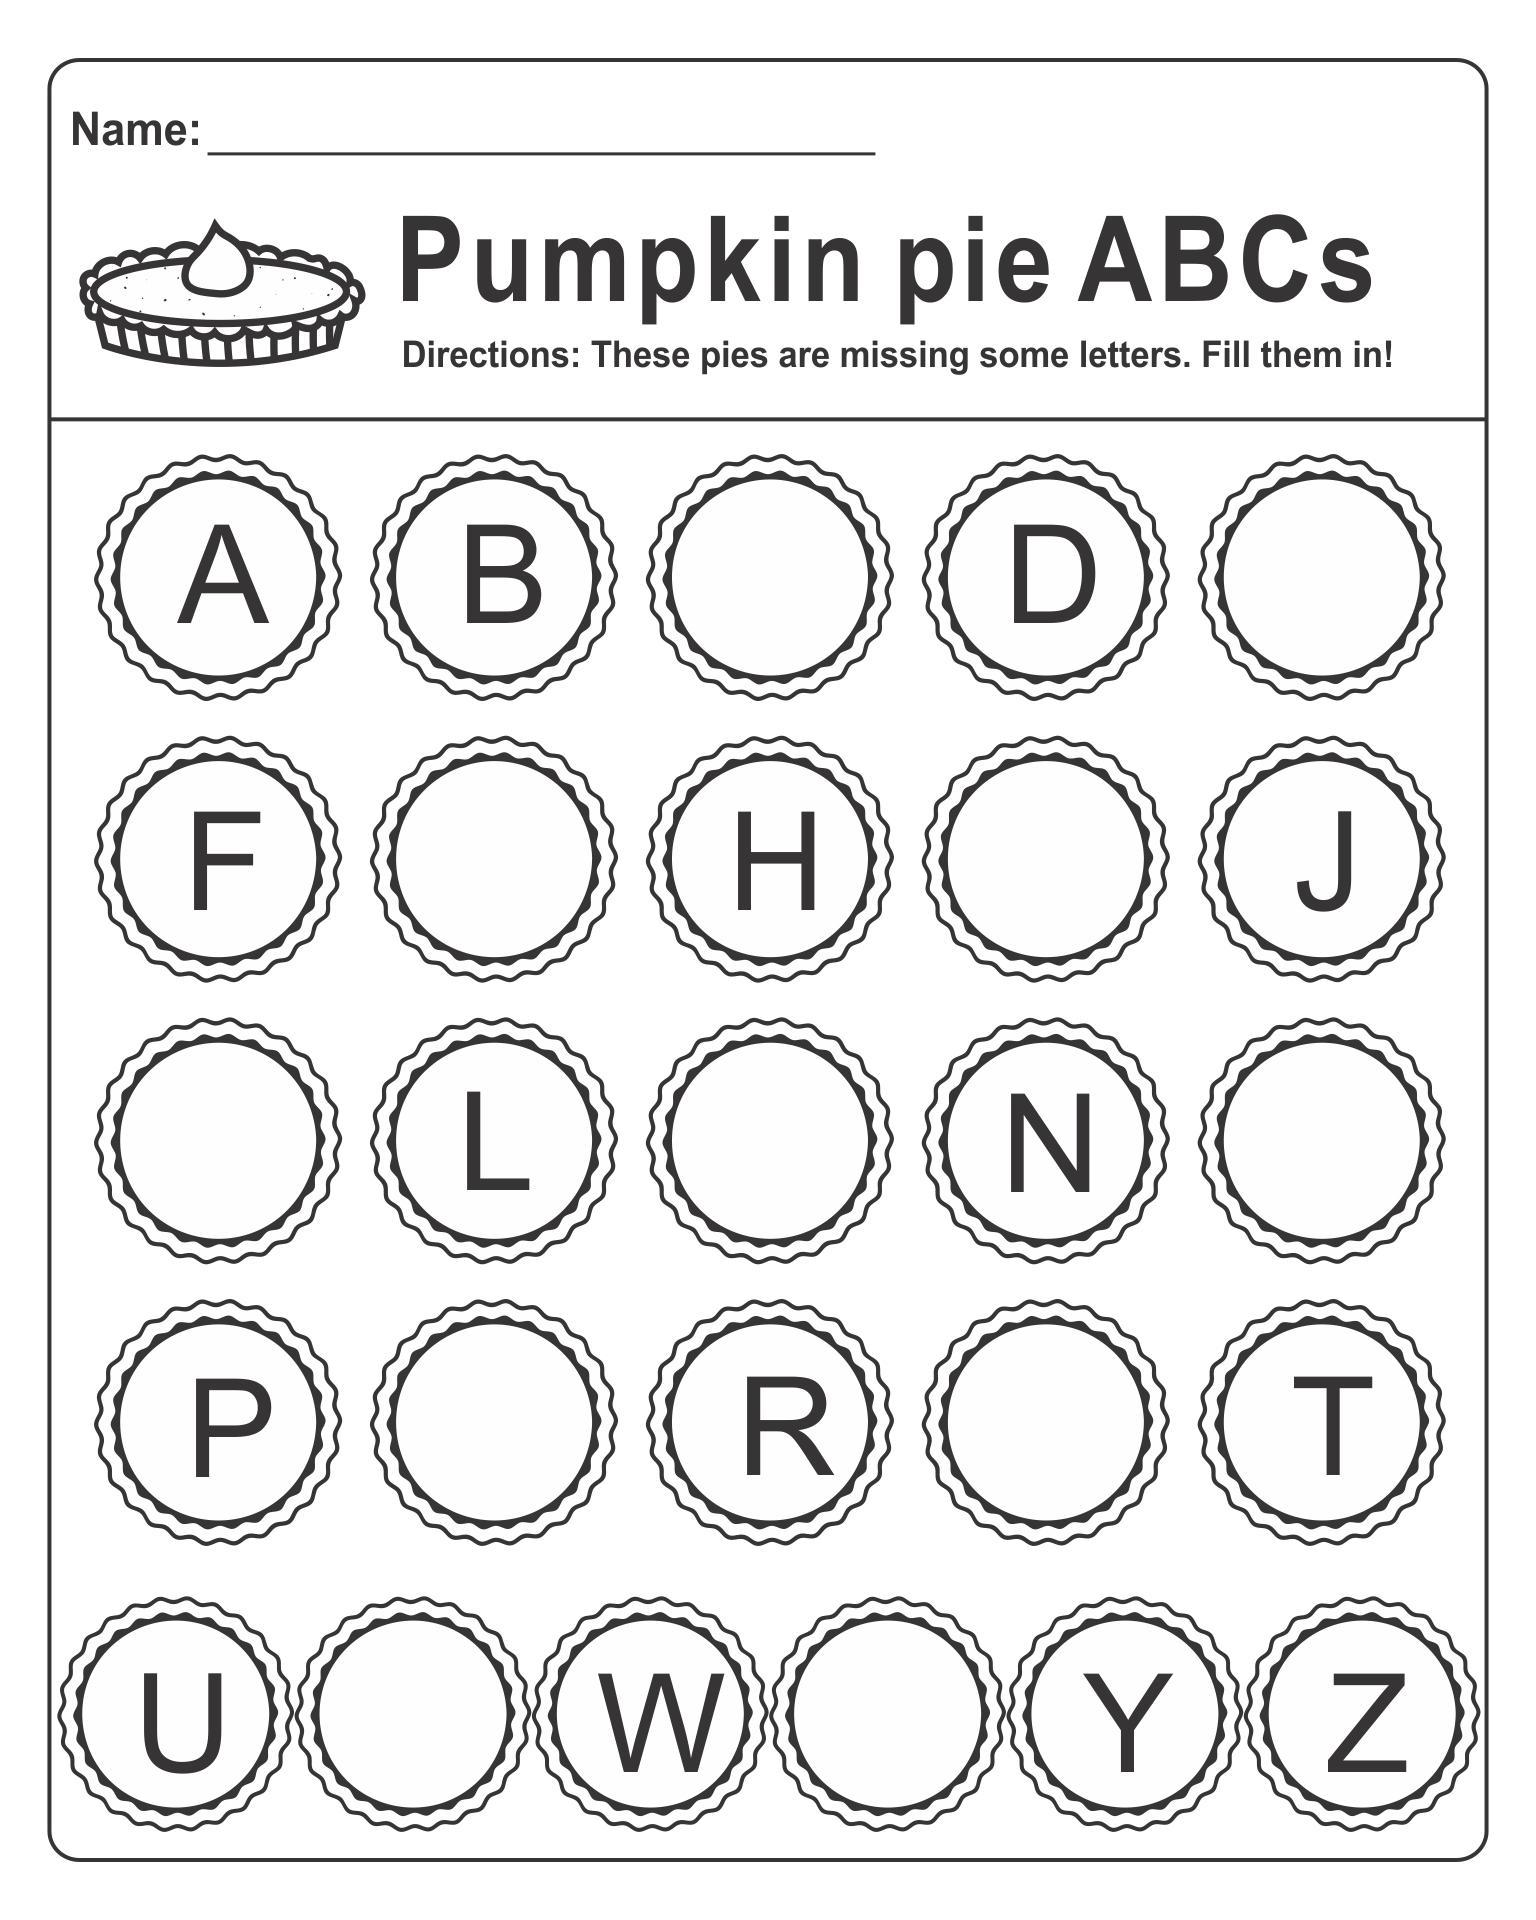 Alphabet Printable Images Gallery Category Page 7